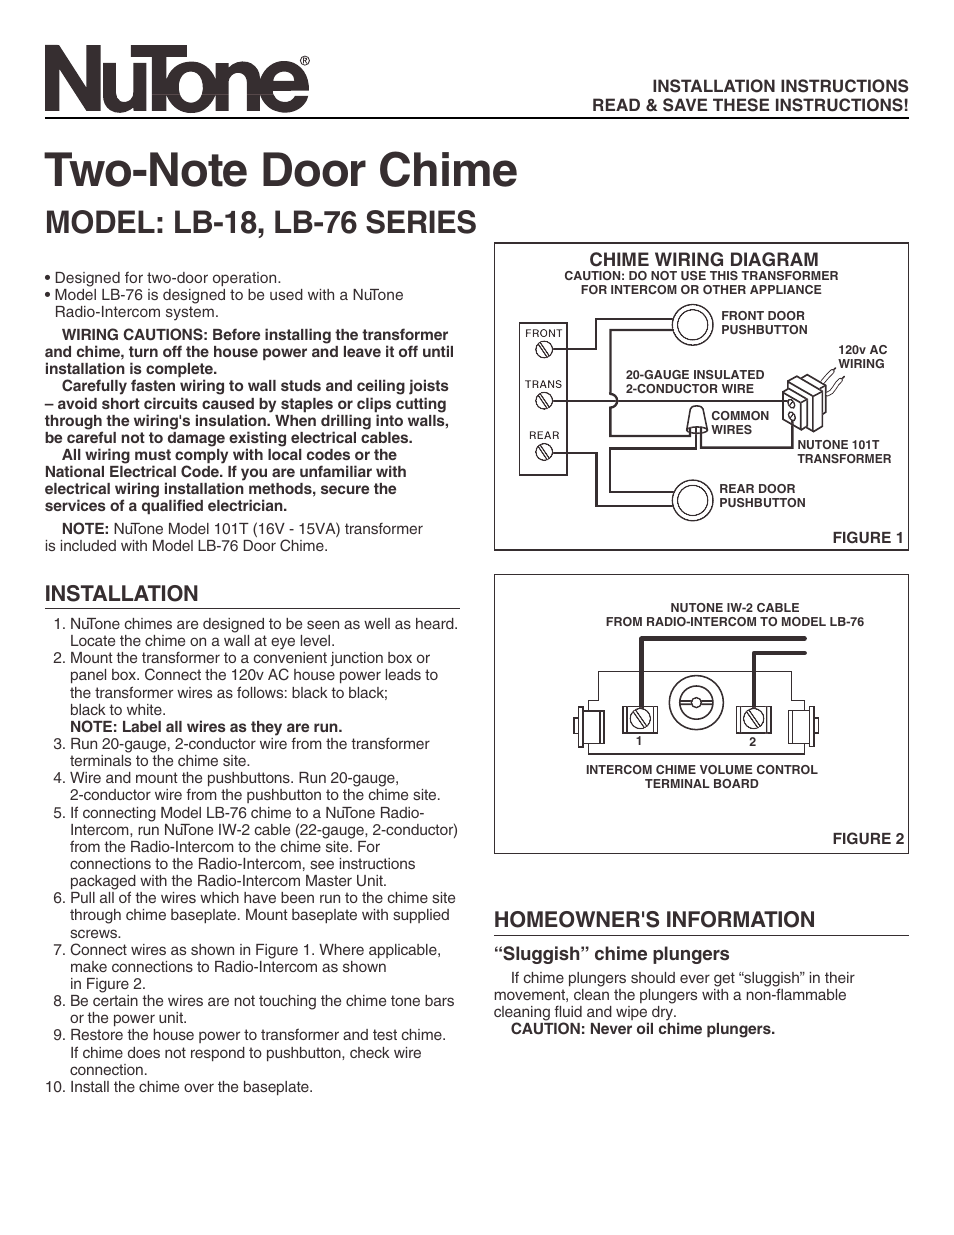 Broan Doorbell Wiring Diagram 202 3 Door 1997 Suzuki King Quad